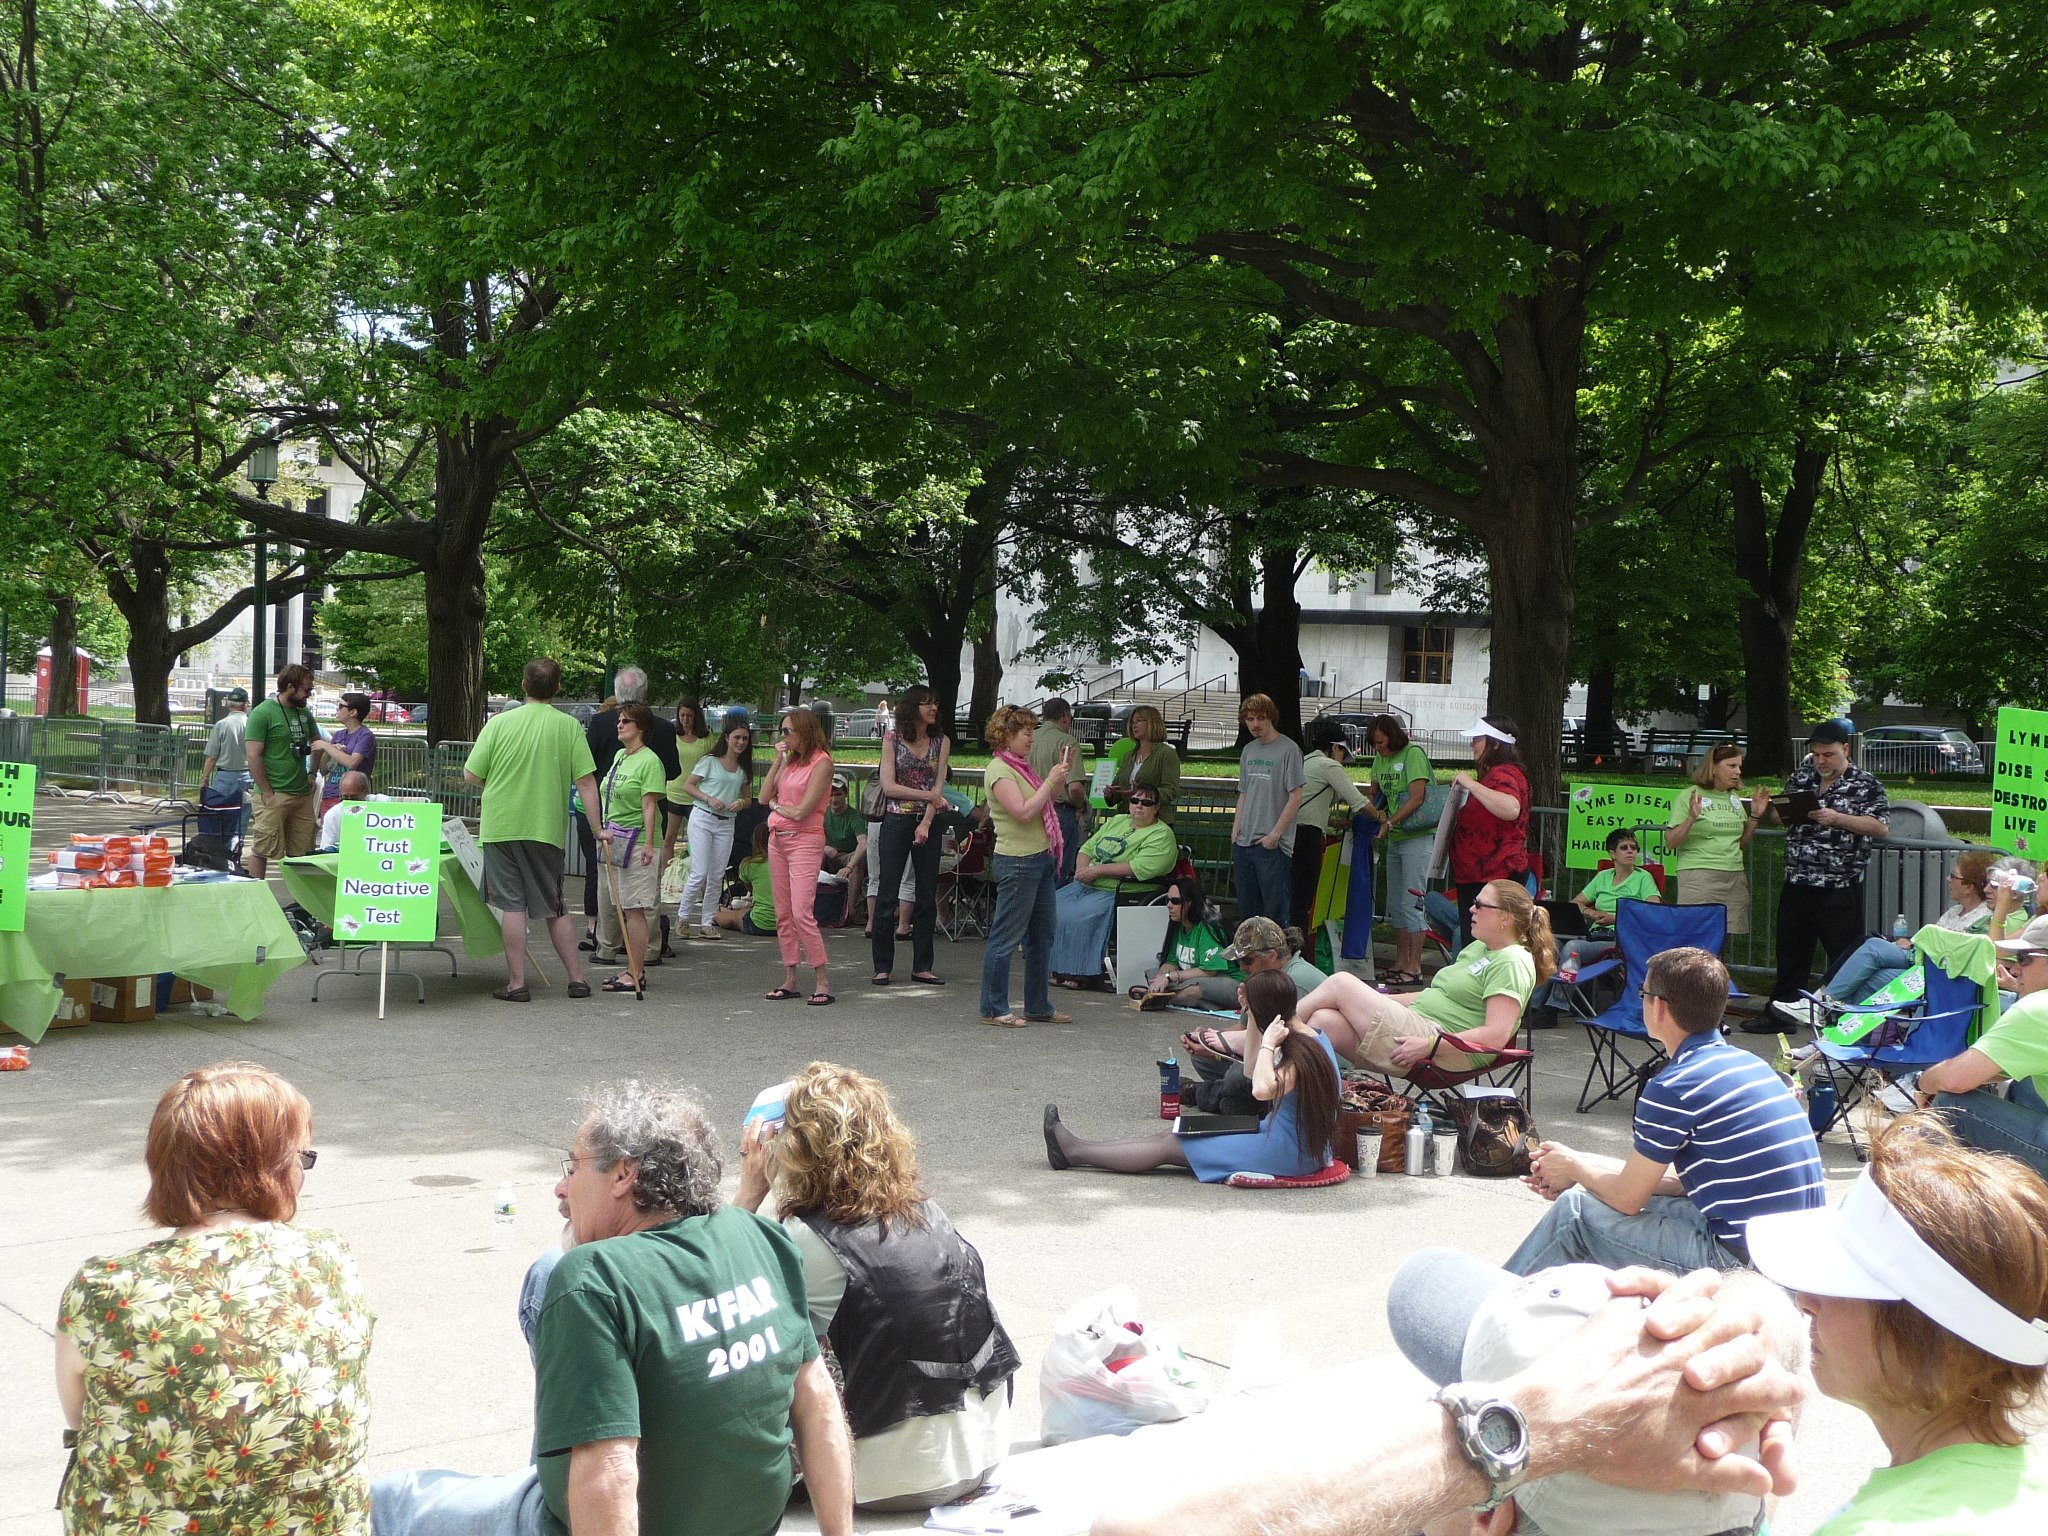 Albany NY Worldwide Lyme Protest Photo Credit: Eric Rutalante